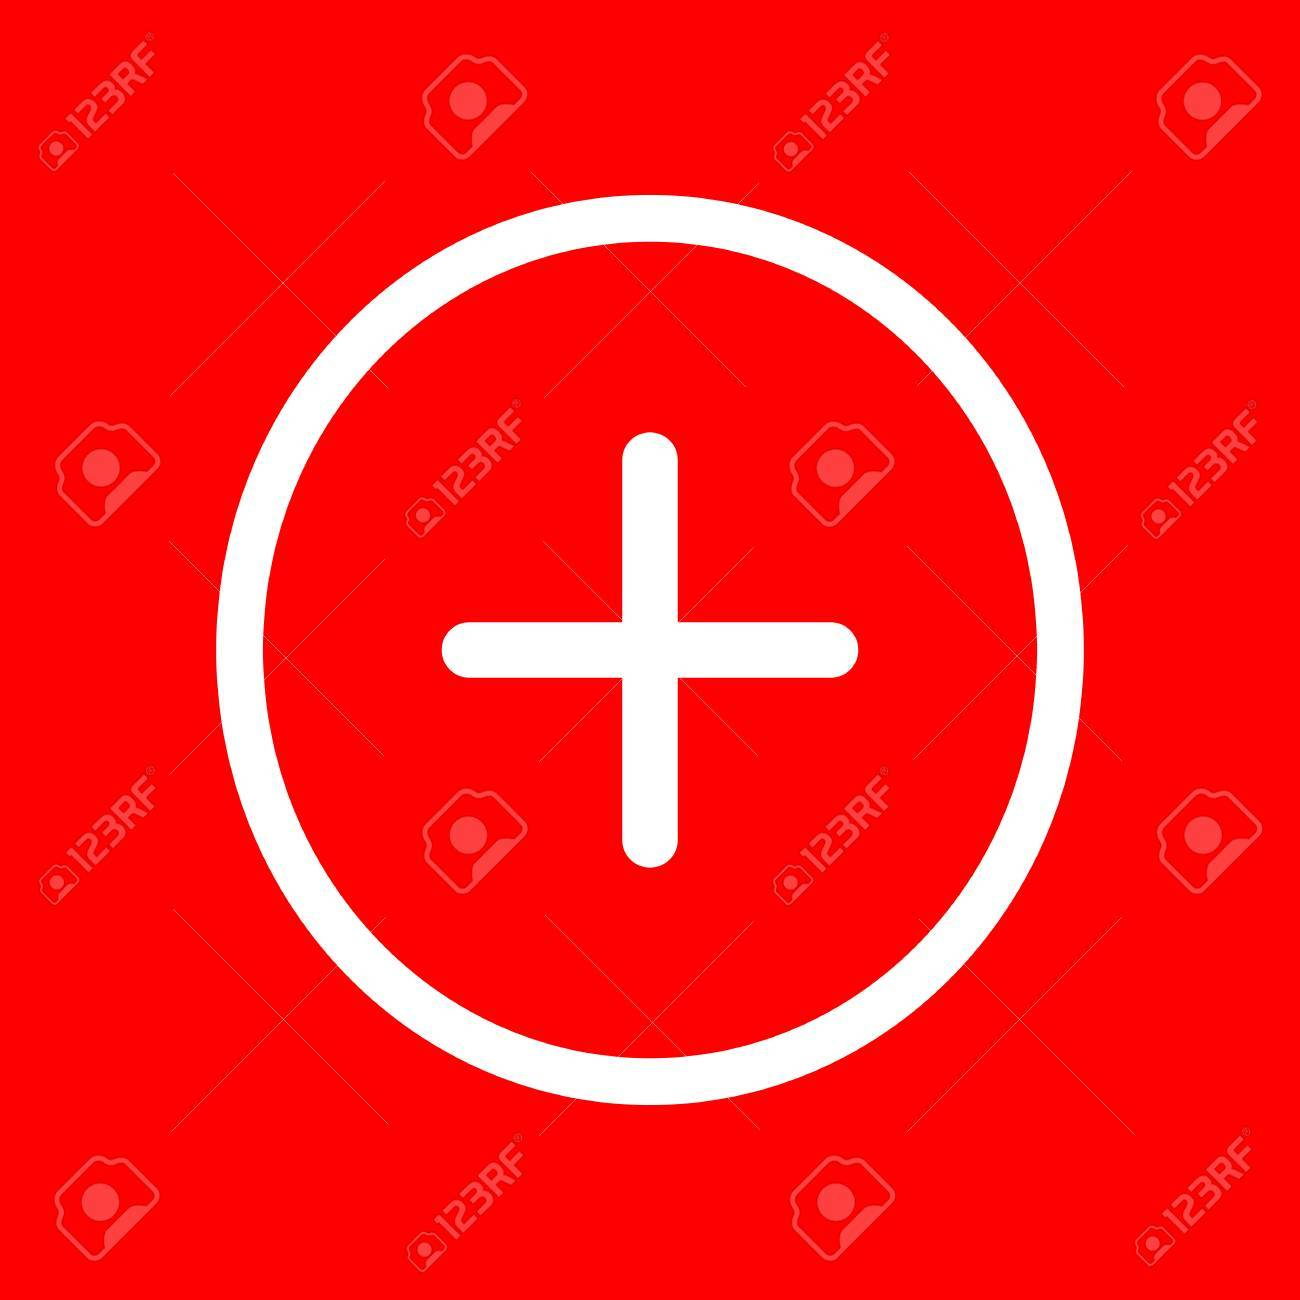 Positive symbol plus sign white icon on red background royalty positive symbol plus sign white icon on red background stock vector 57504625 biocorpaavc Choice Image